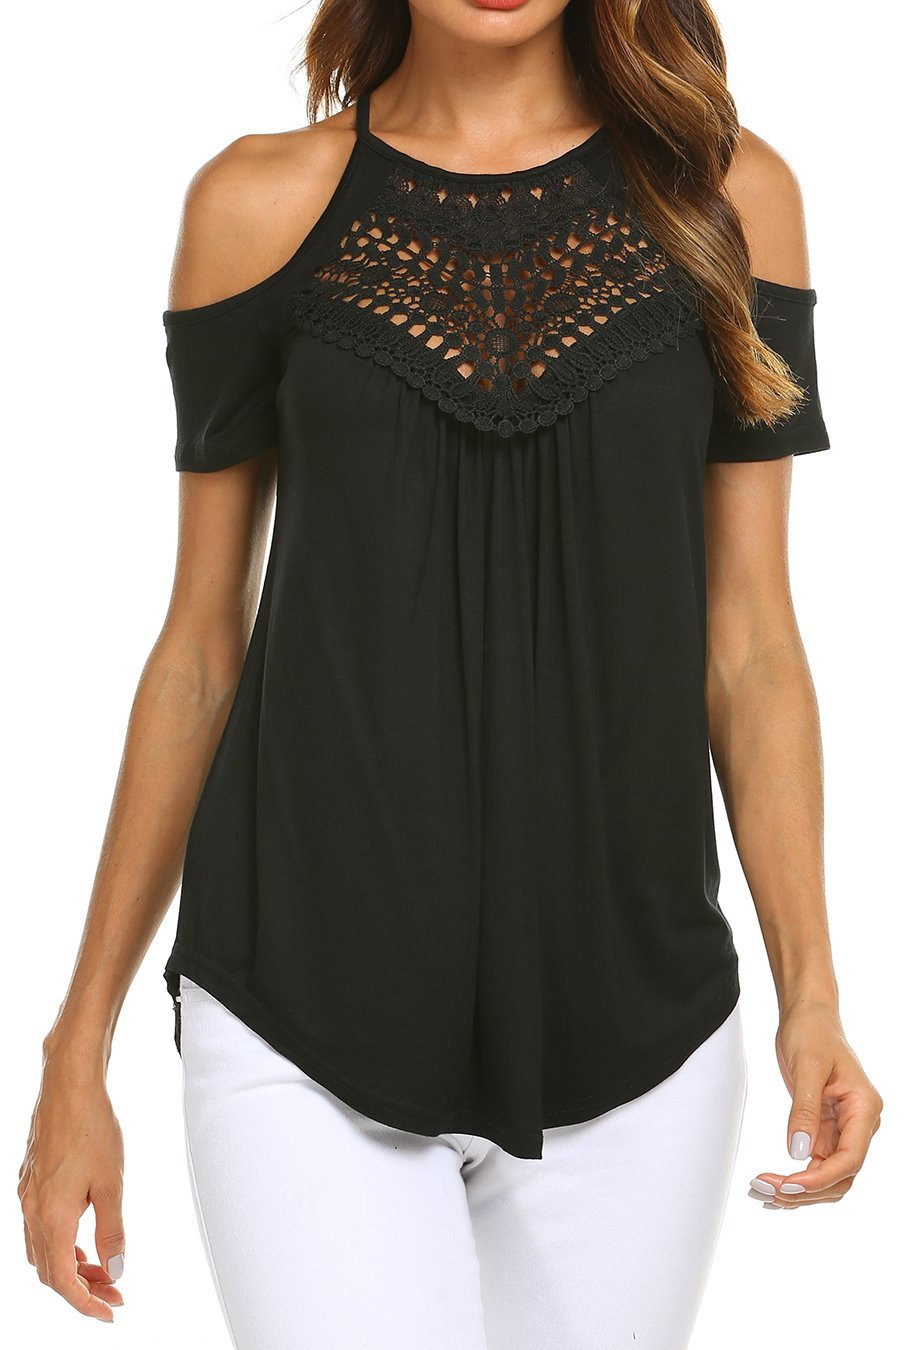 Womens Sexy Summer Lace Flare Hem Tunic Strappy Blouses Tops for Ladies Black M